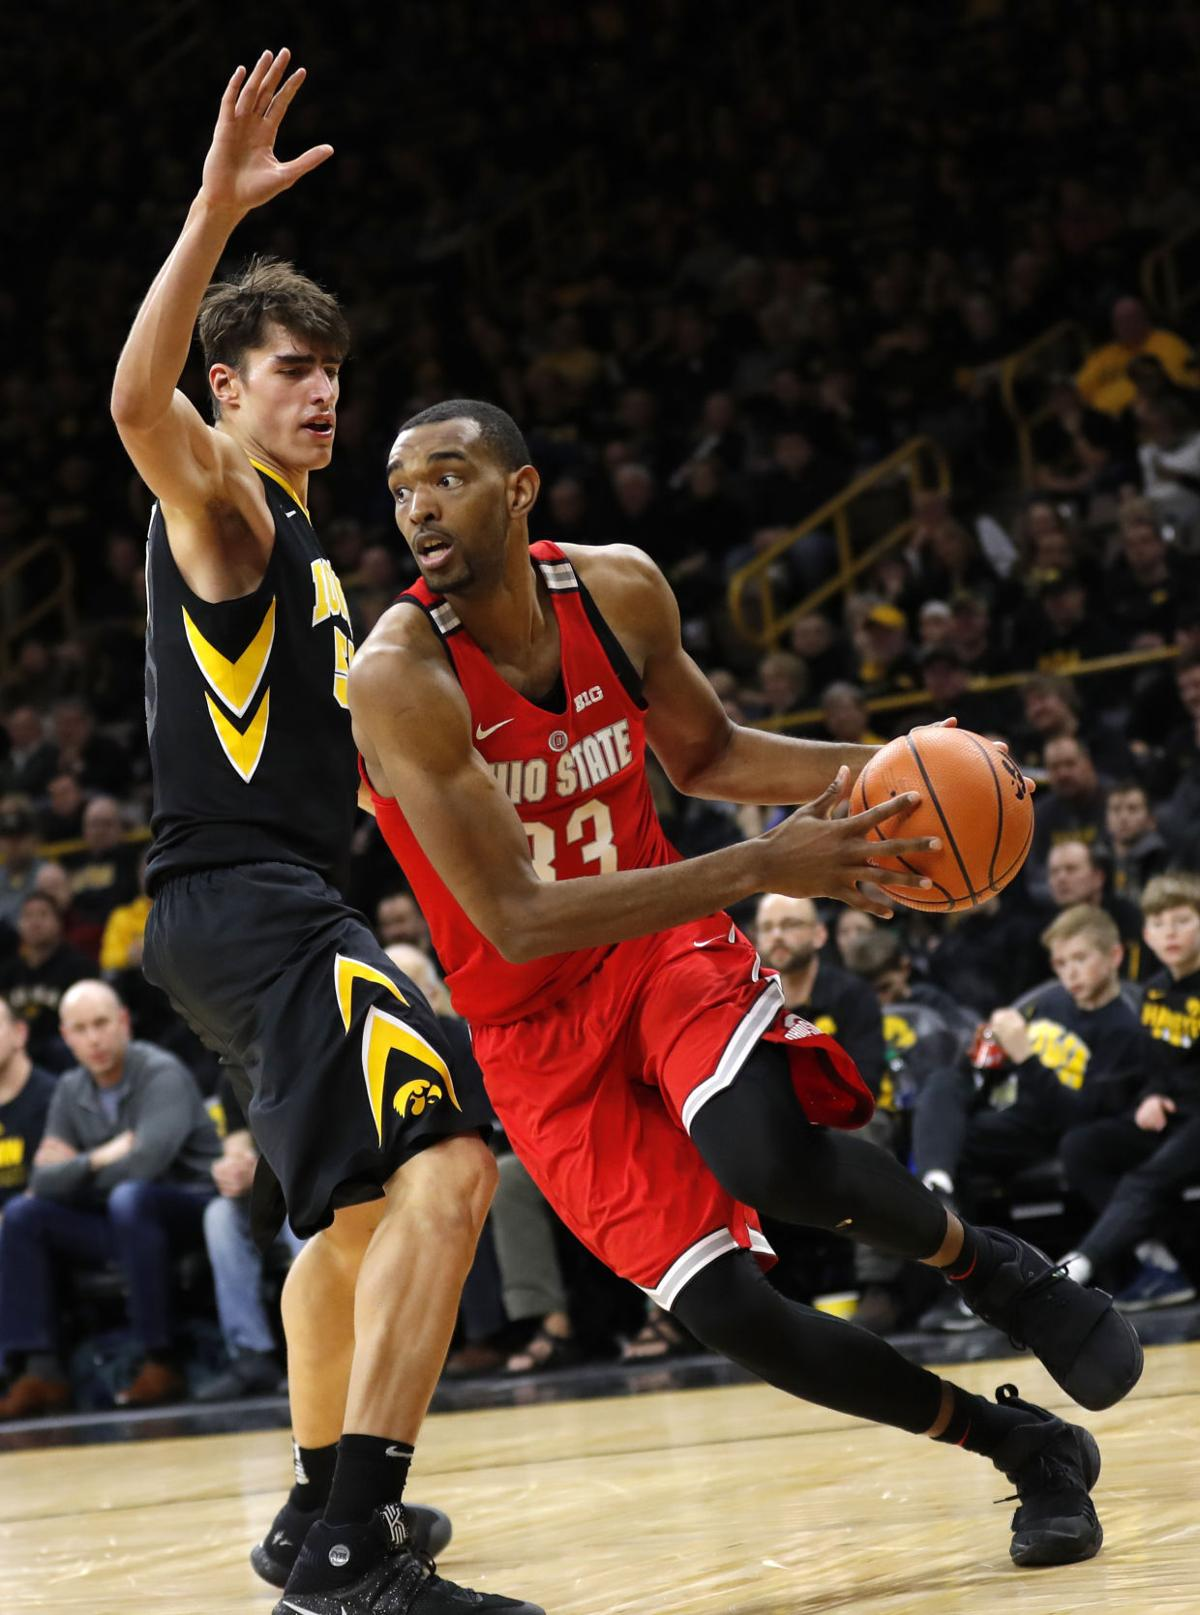 Ohio St Iowa Basketball 1